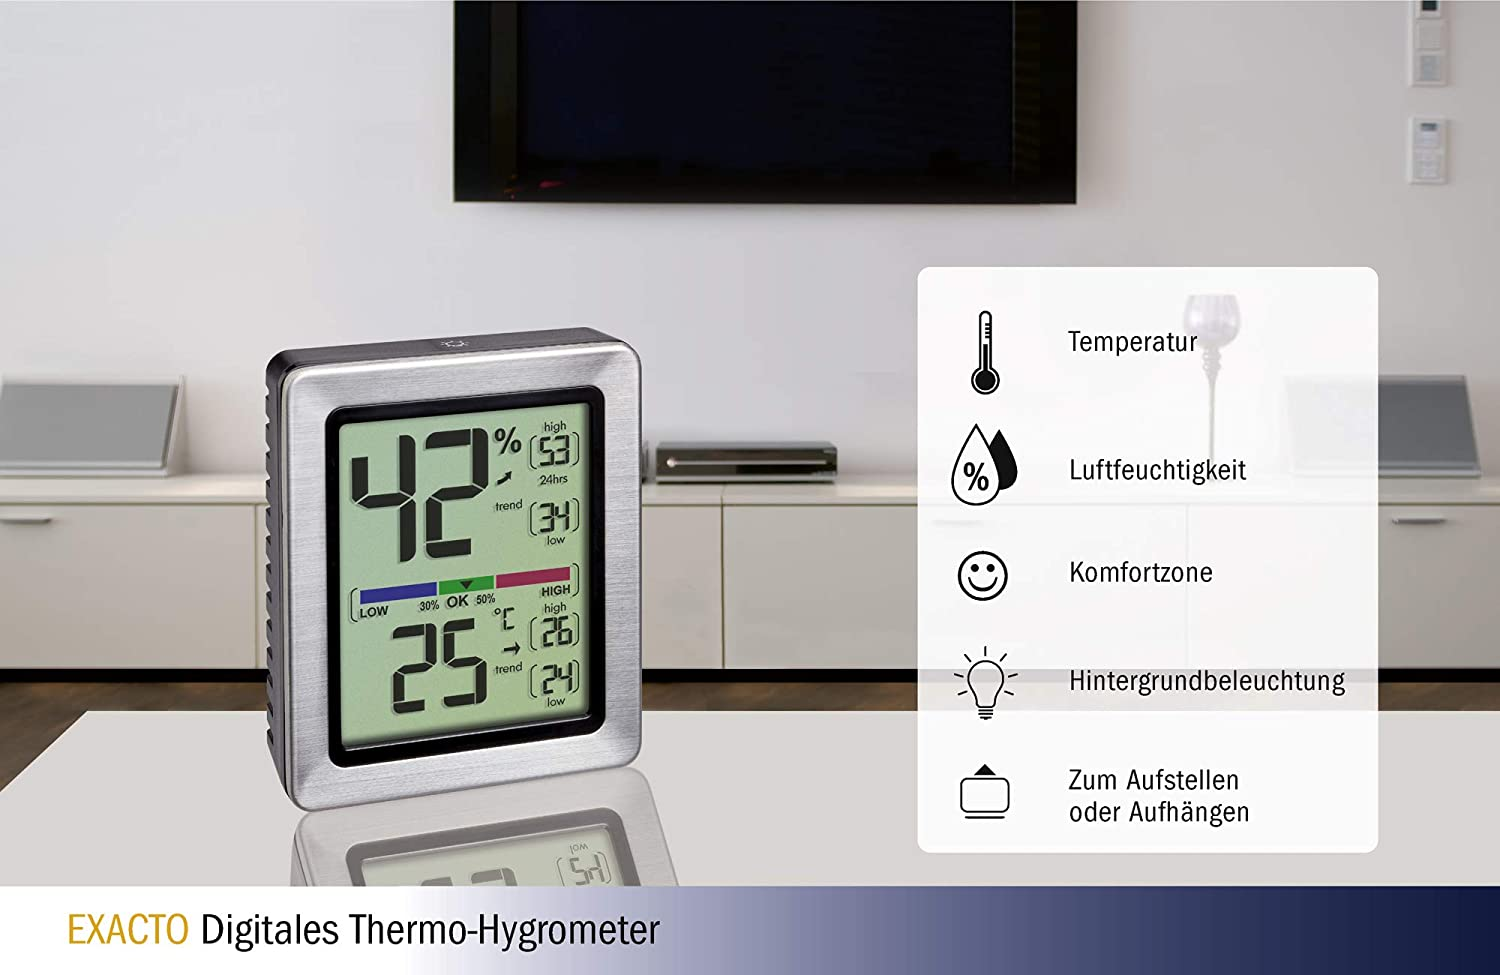 Indoor TFA-Dostmann Digital Thermo-Hygrometer Exacto 26 74 x 30.5047.54 B 90 mm L H incl Precision Sensor Accurate Temperature and Humidity 48 Silver, x